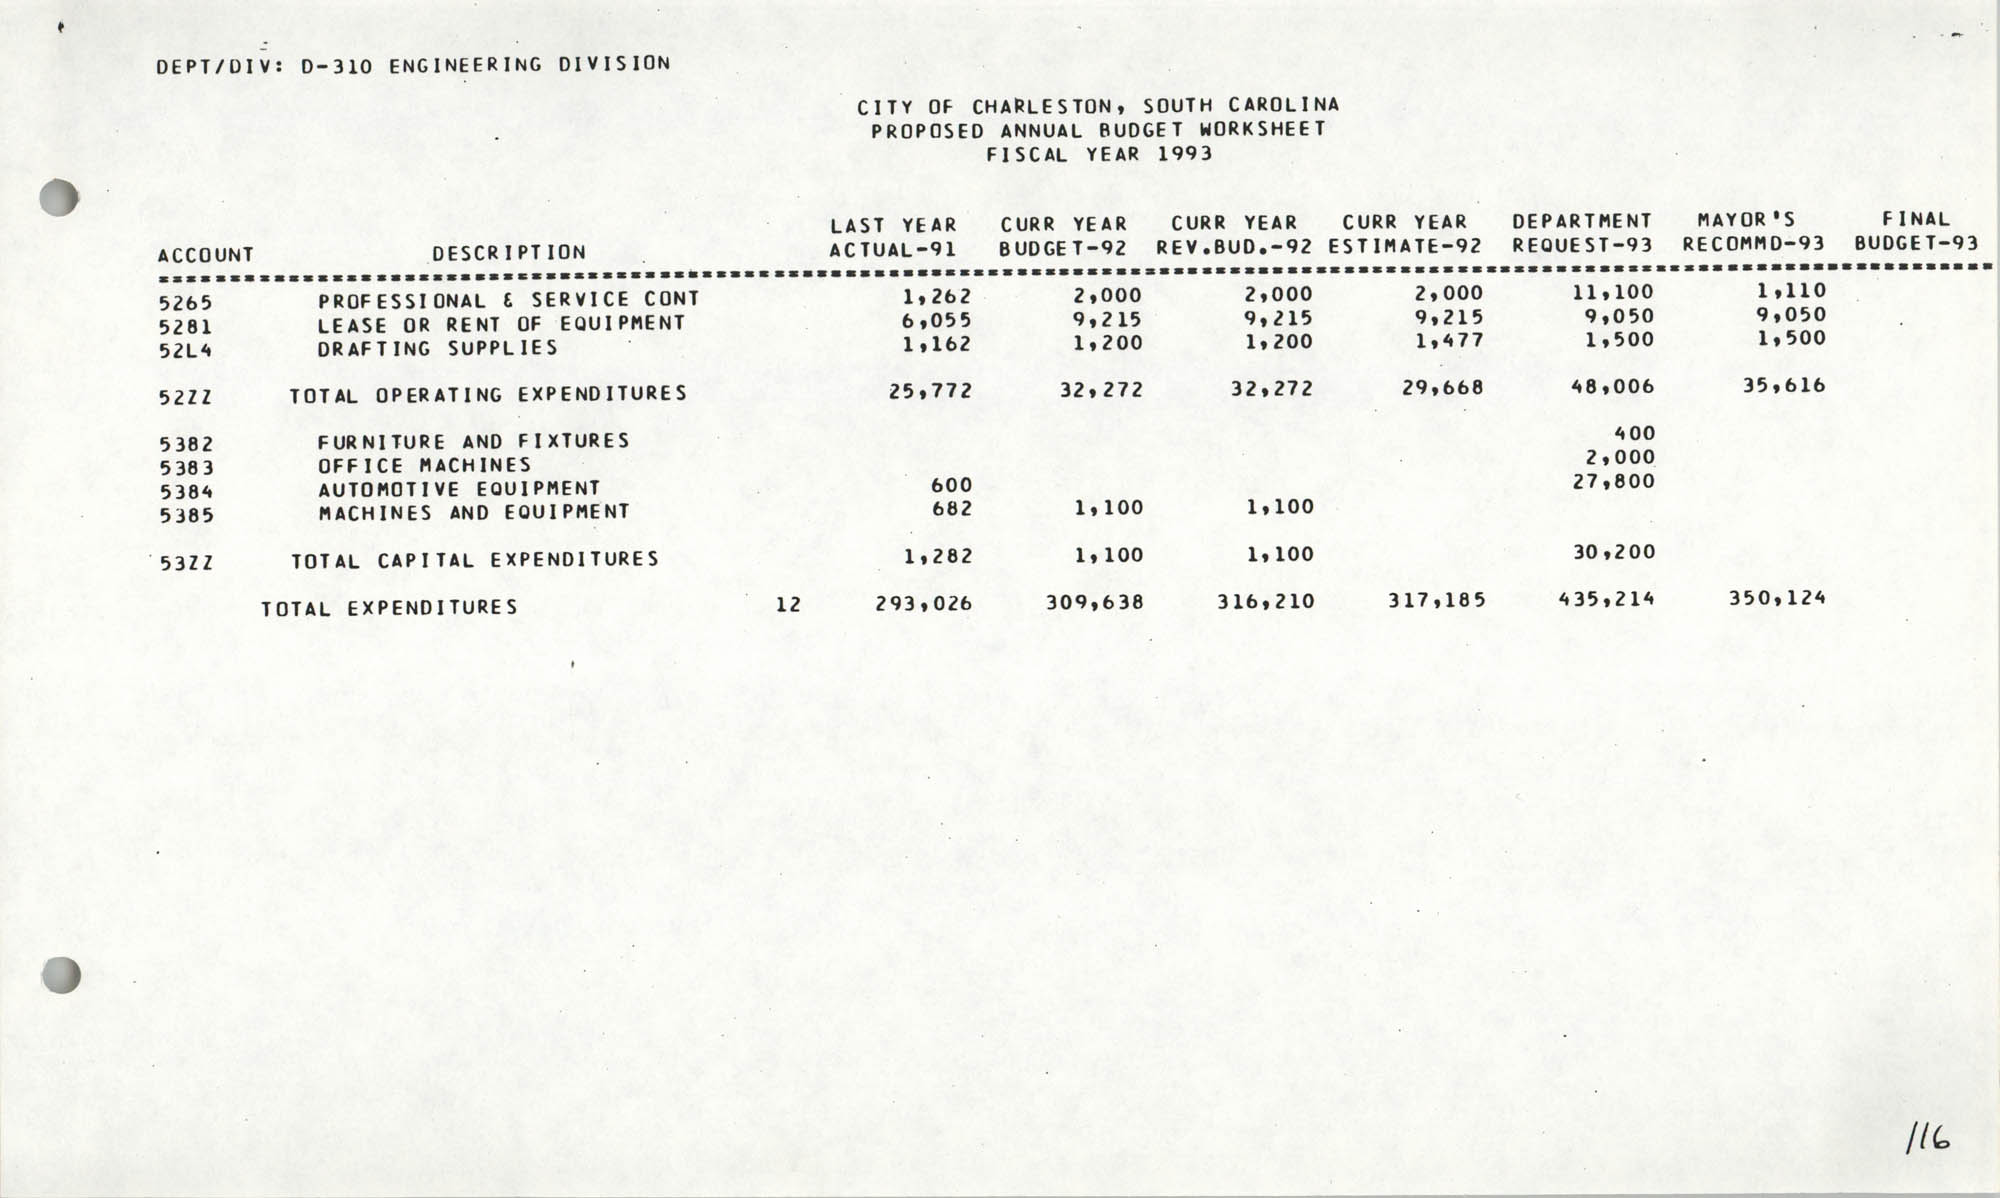 The City Council of Charleston, South Carolina, 1993 Budget, Page 116